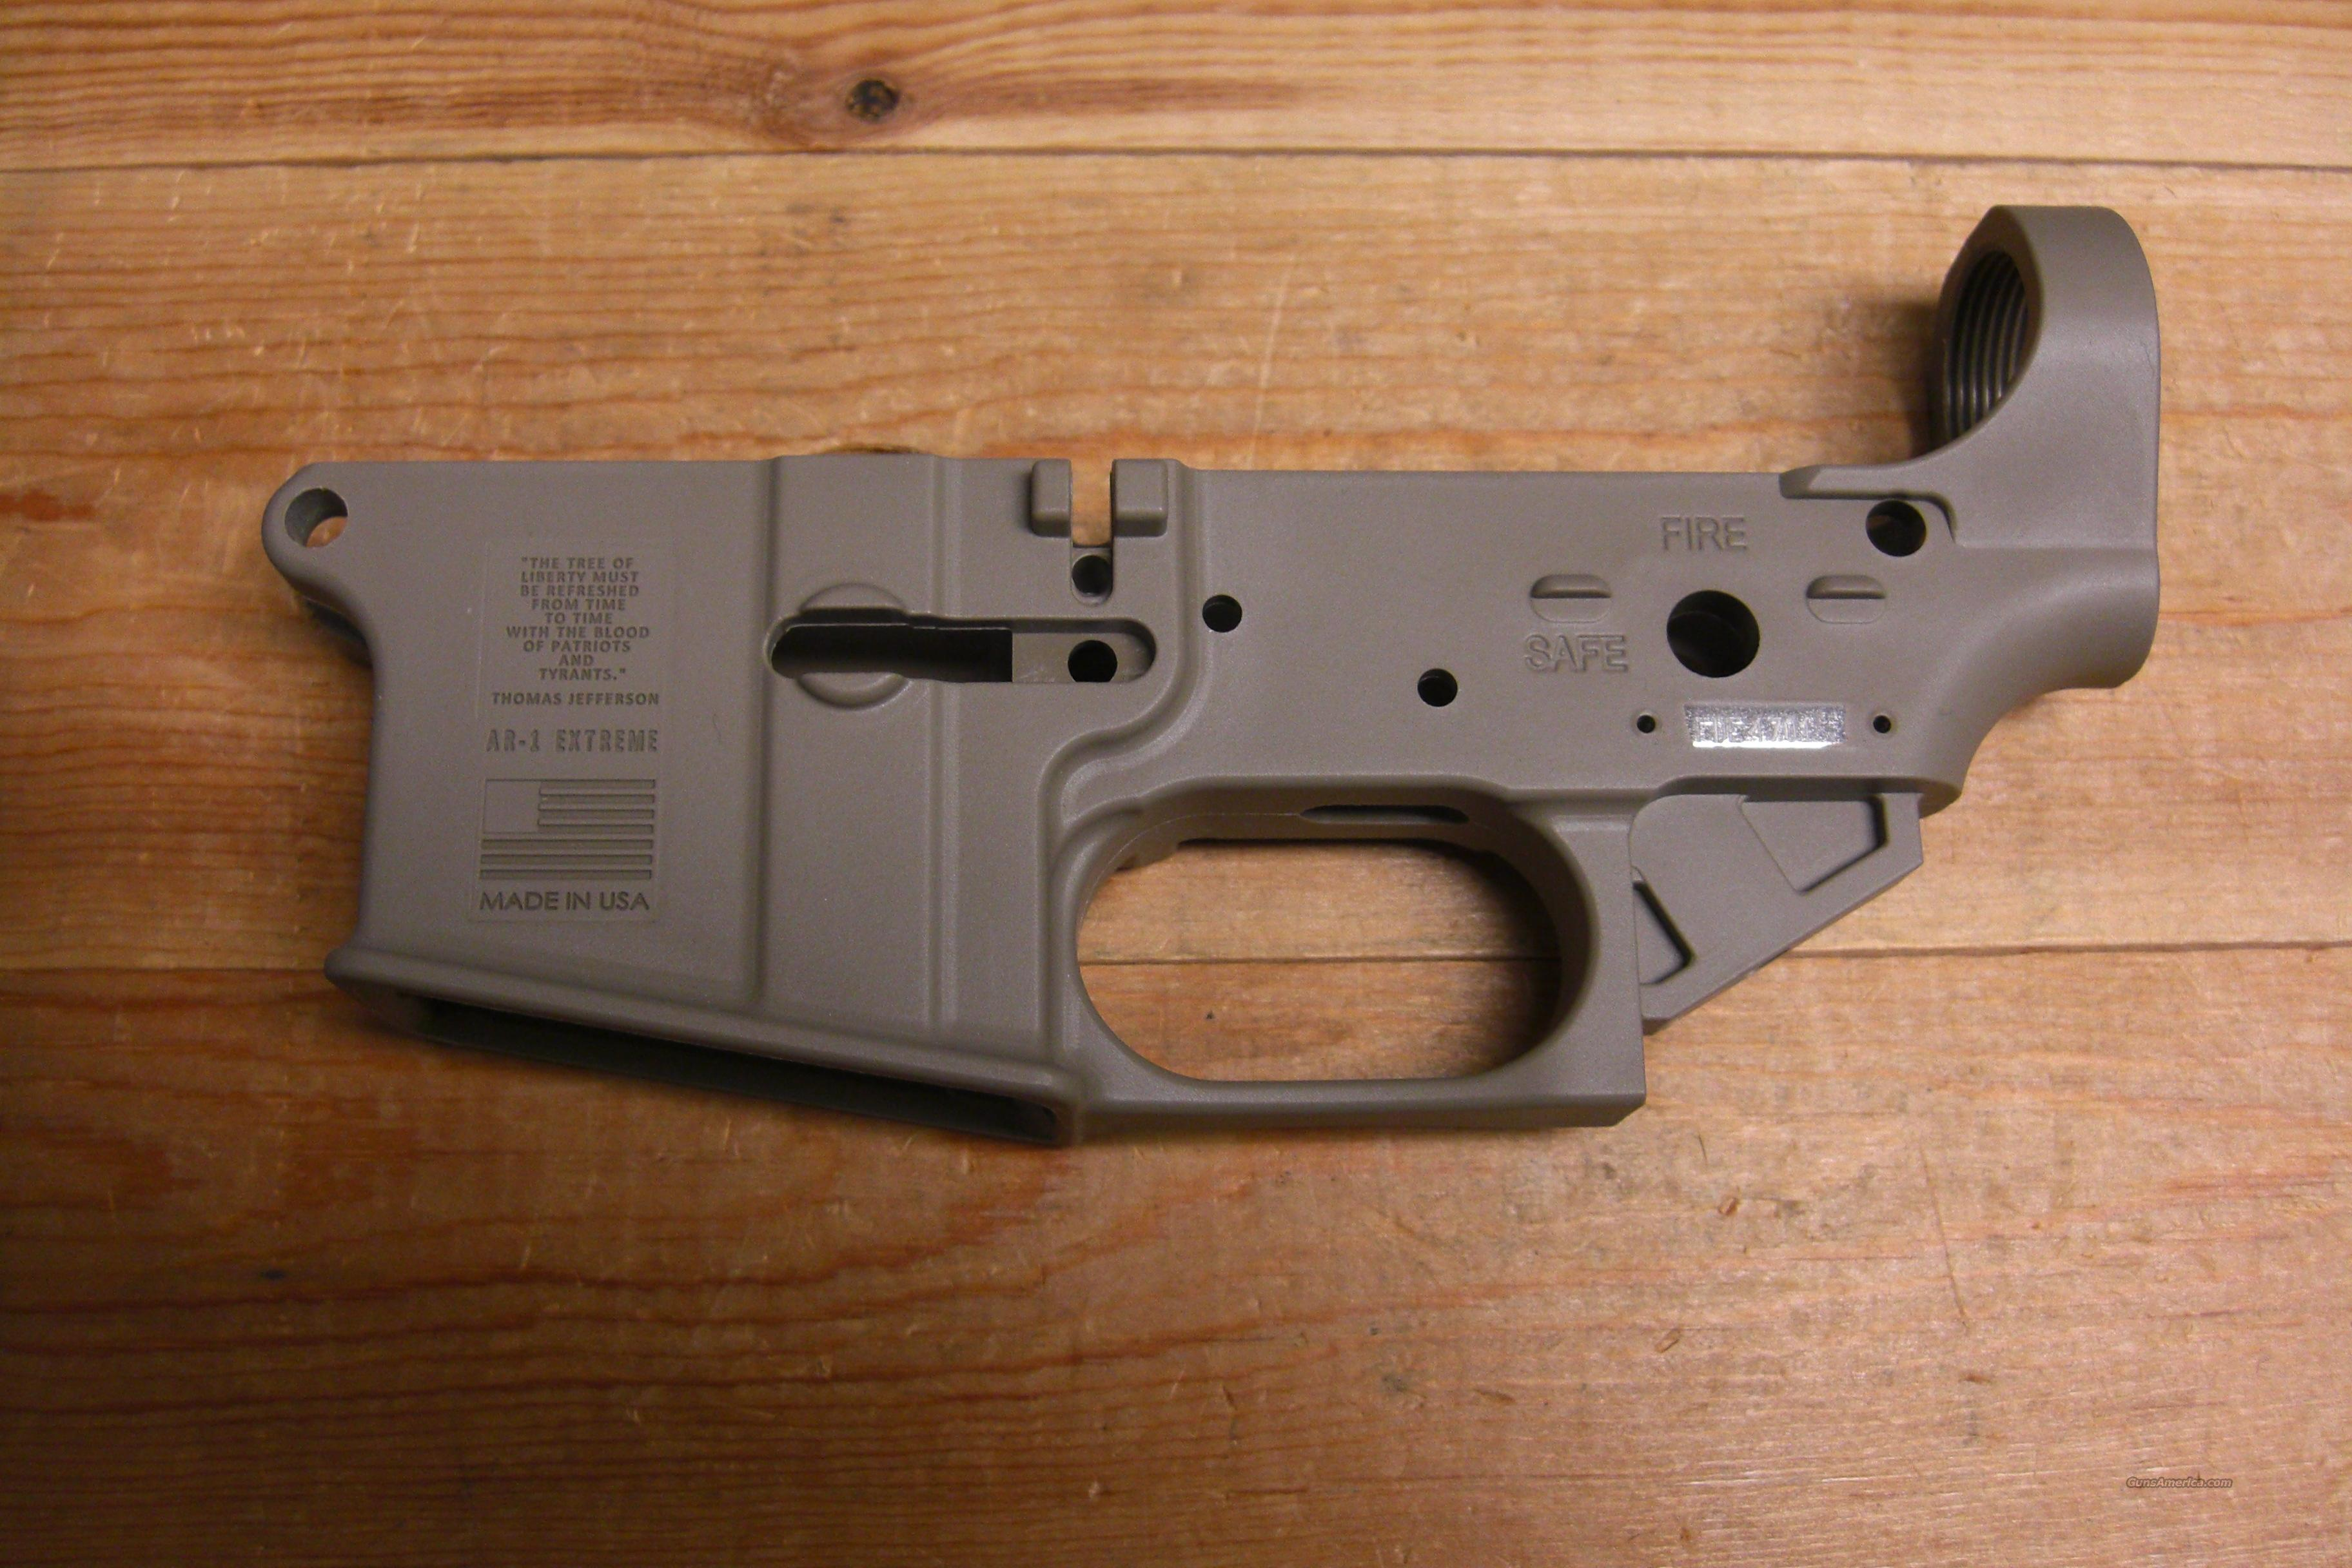 FMK AR-1 Extreme lower  w/lifetime warranty  Guns > Rifles > AR-15 Rifles - Small Manufacturers > Lower Only